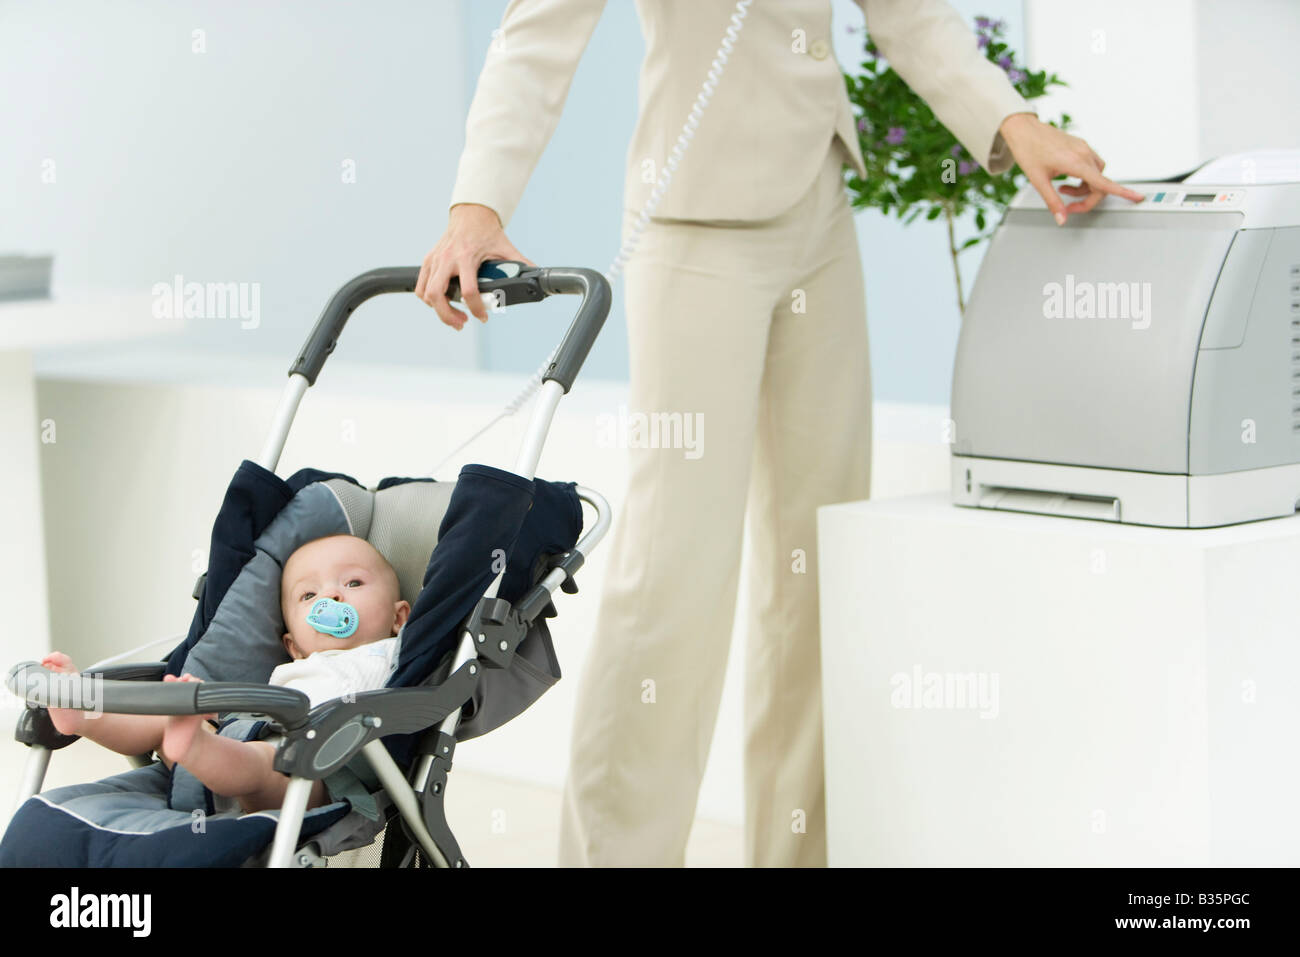 Professional woman in office with baby in stroller, using printer, cropped view - Stock Image